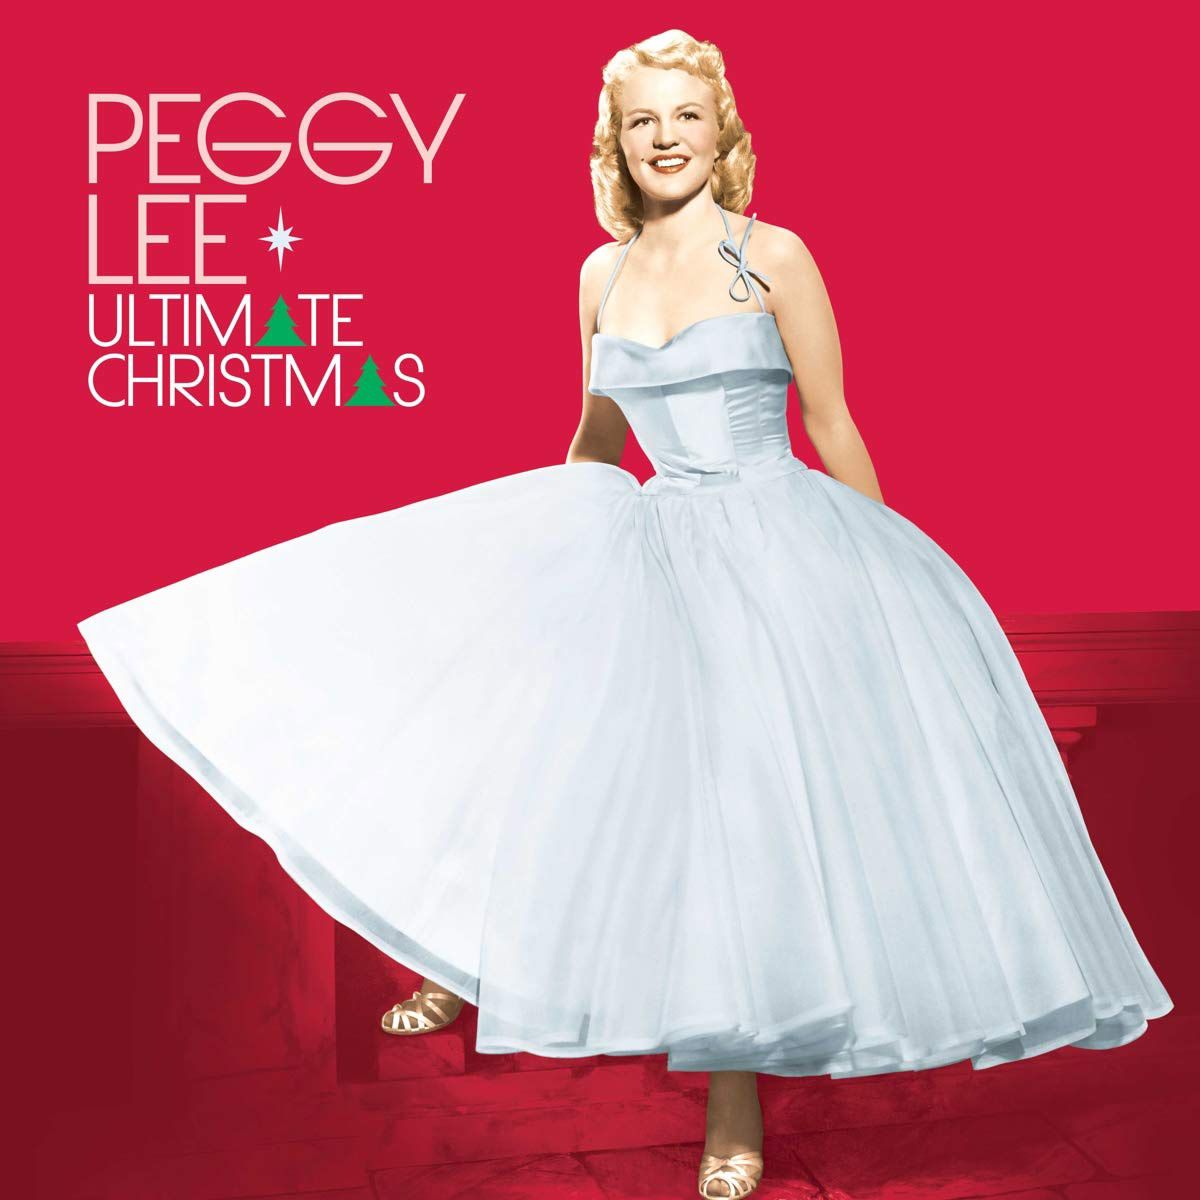 Forsophisticated holiday spirits, go with Peggy Lee's Ultimate Christmas(Capitol/UMe).